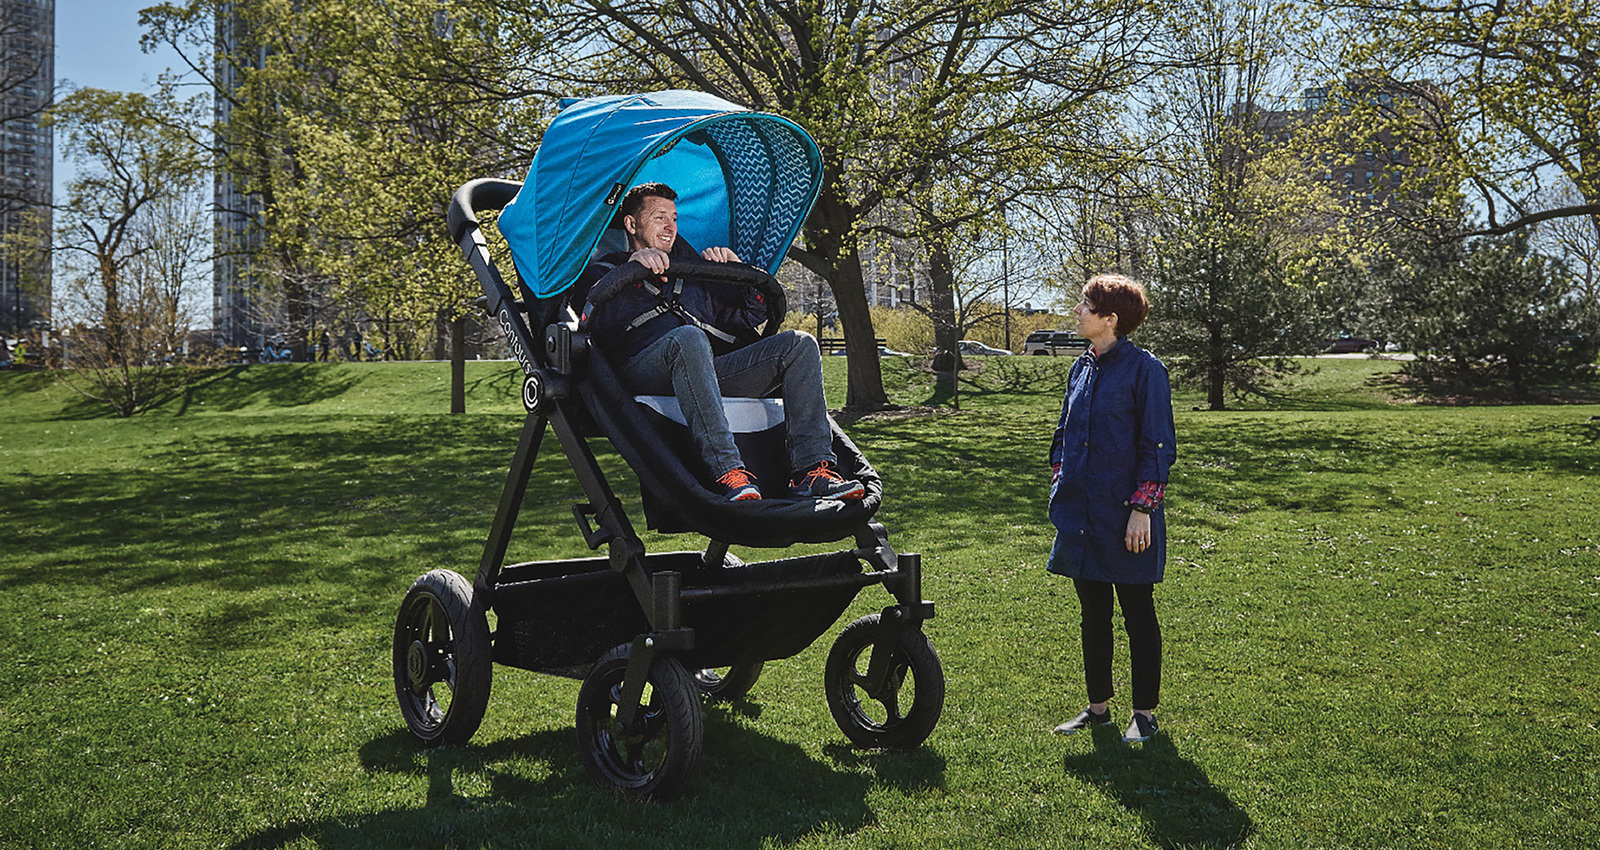 The Baby Stroller Test-Ride by Contours